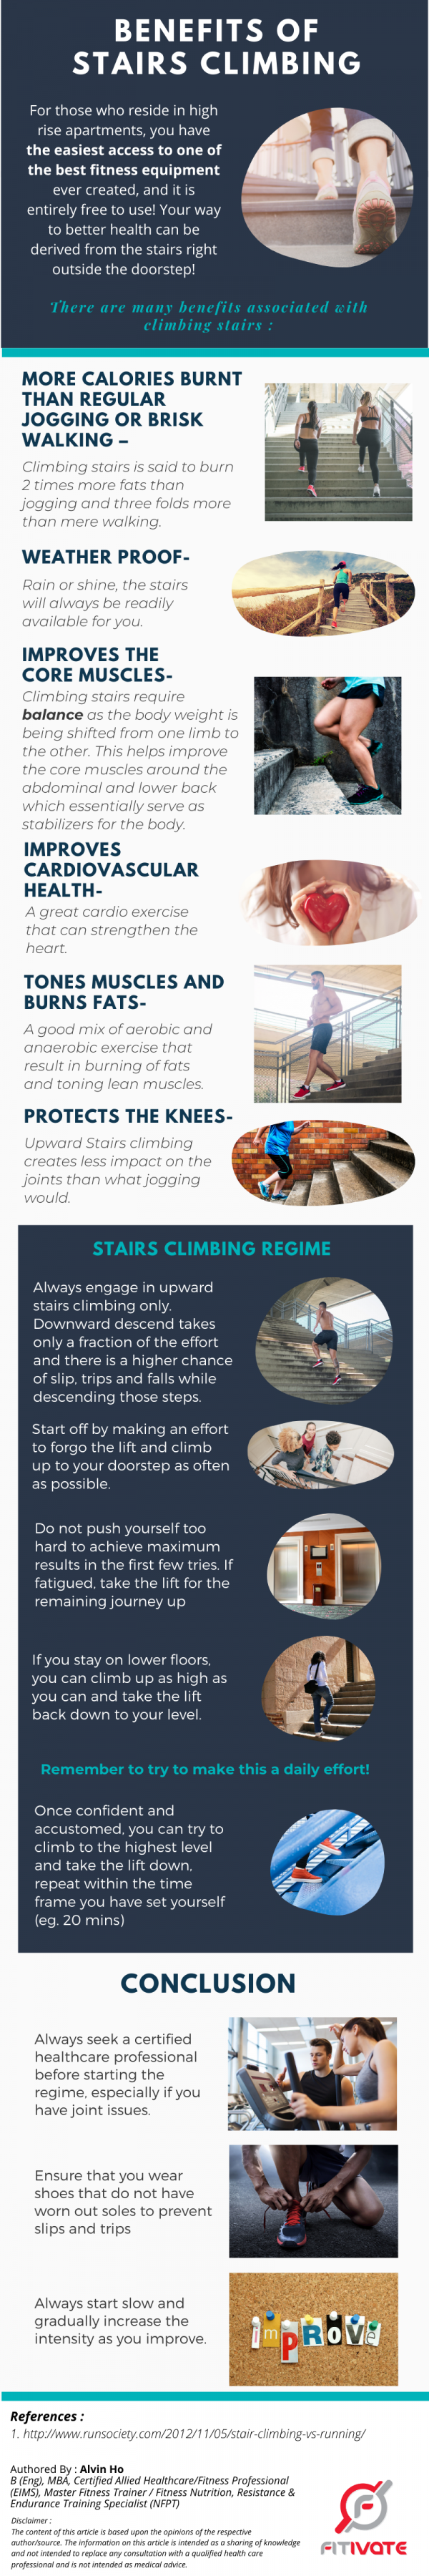 stair climbing benefits, stair climbing workout, stairs climbing lose weight